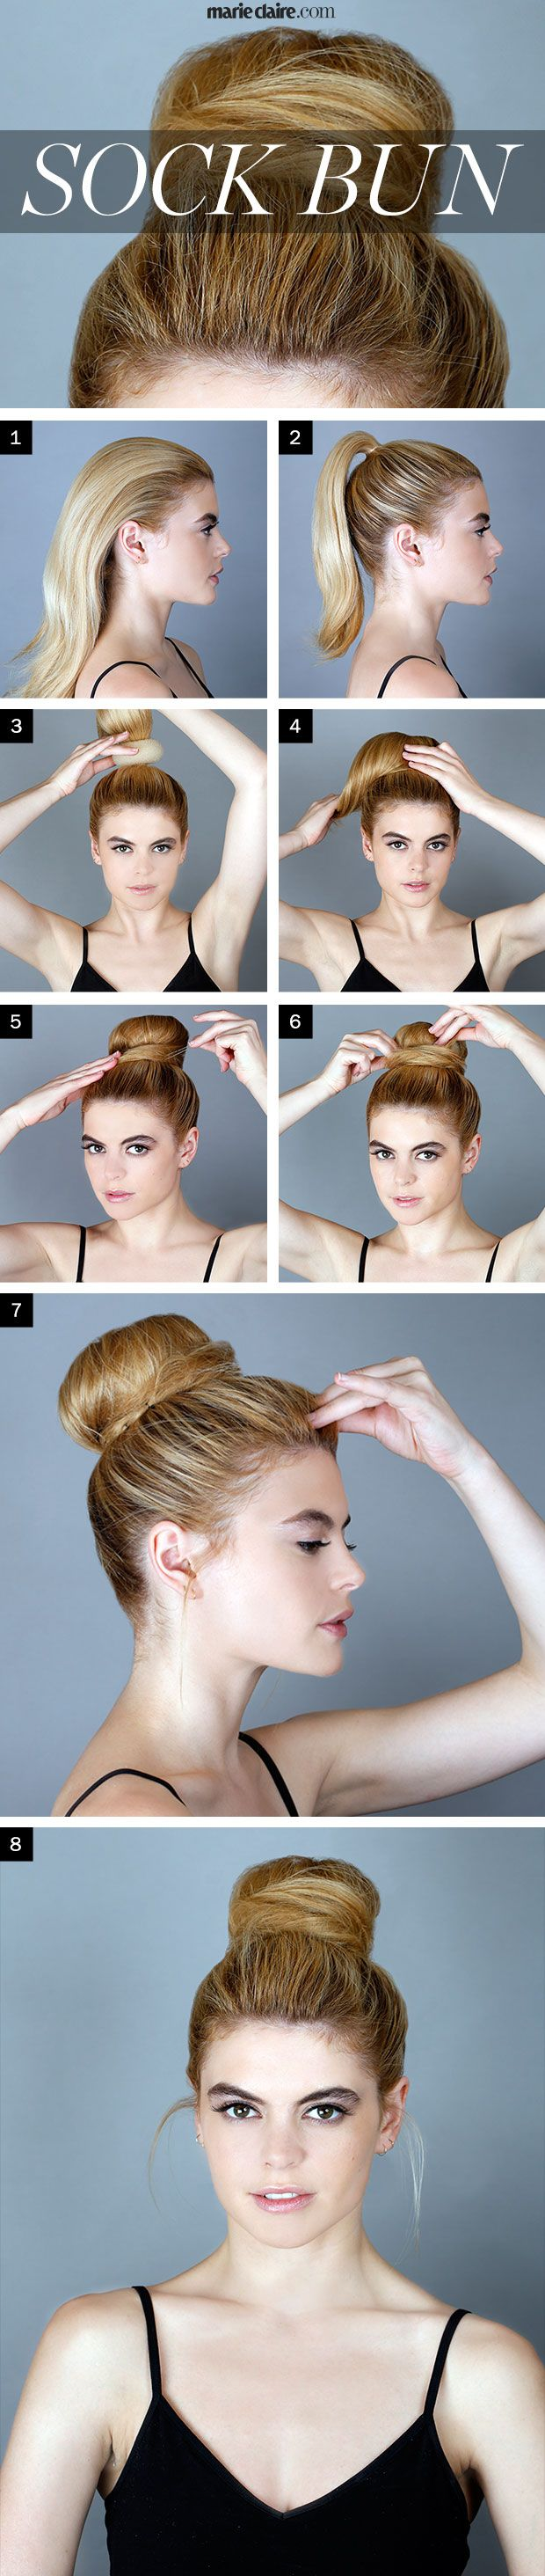 Hair How-To: Sock Bun | MarieClaire.com